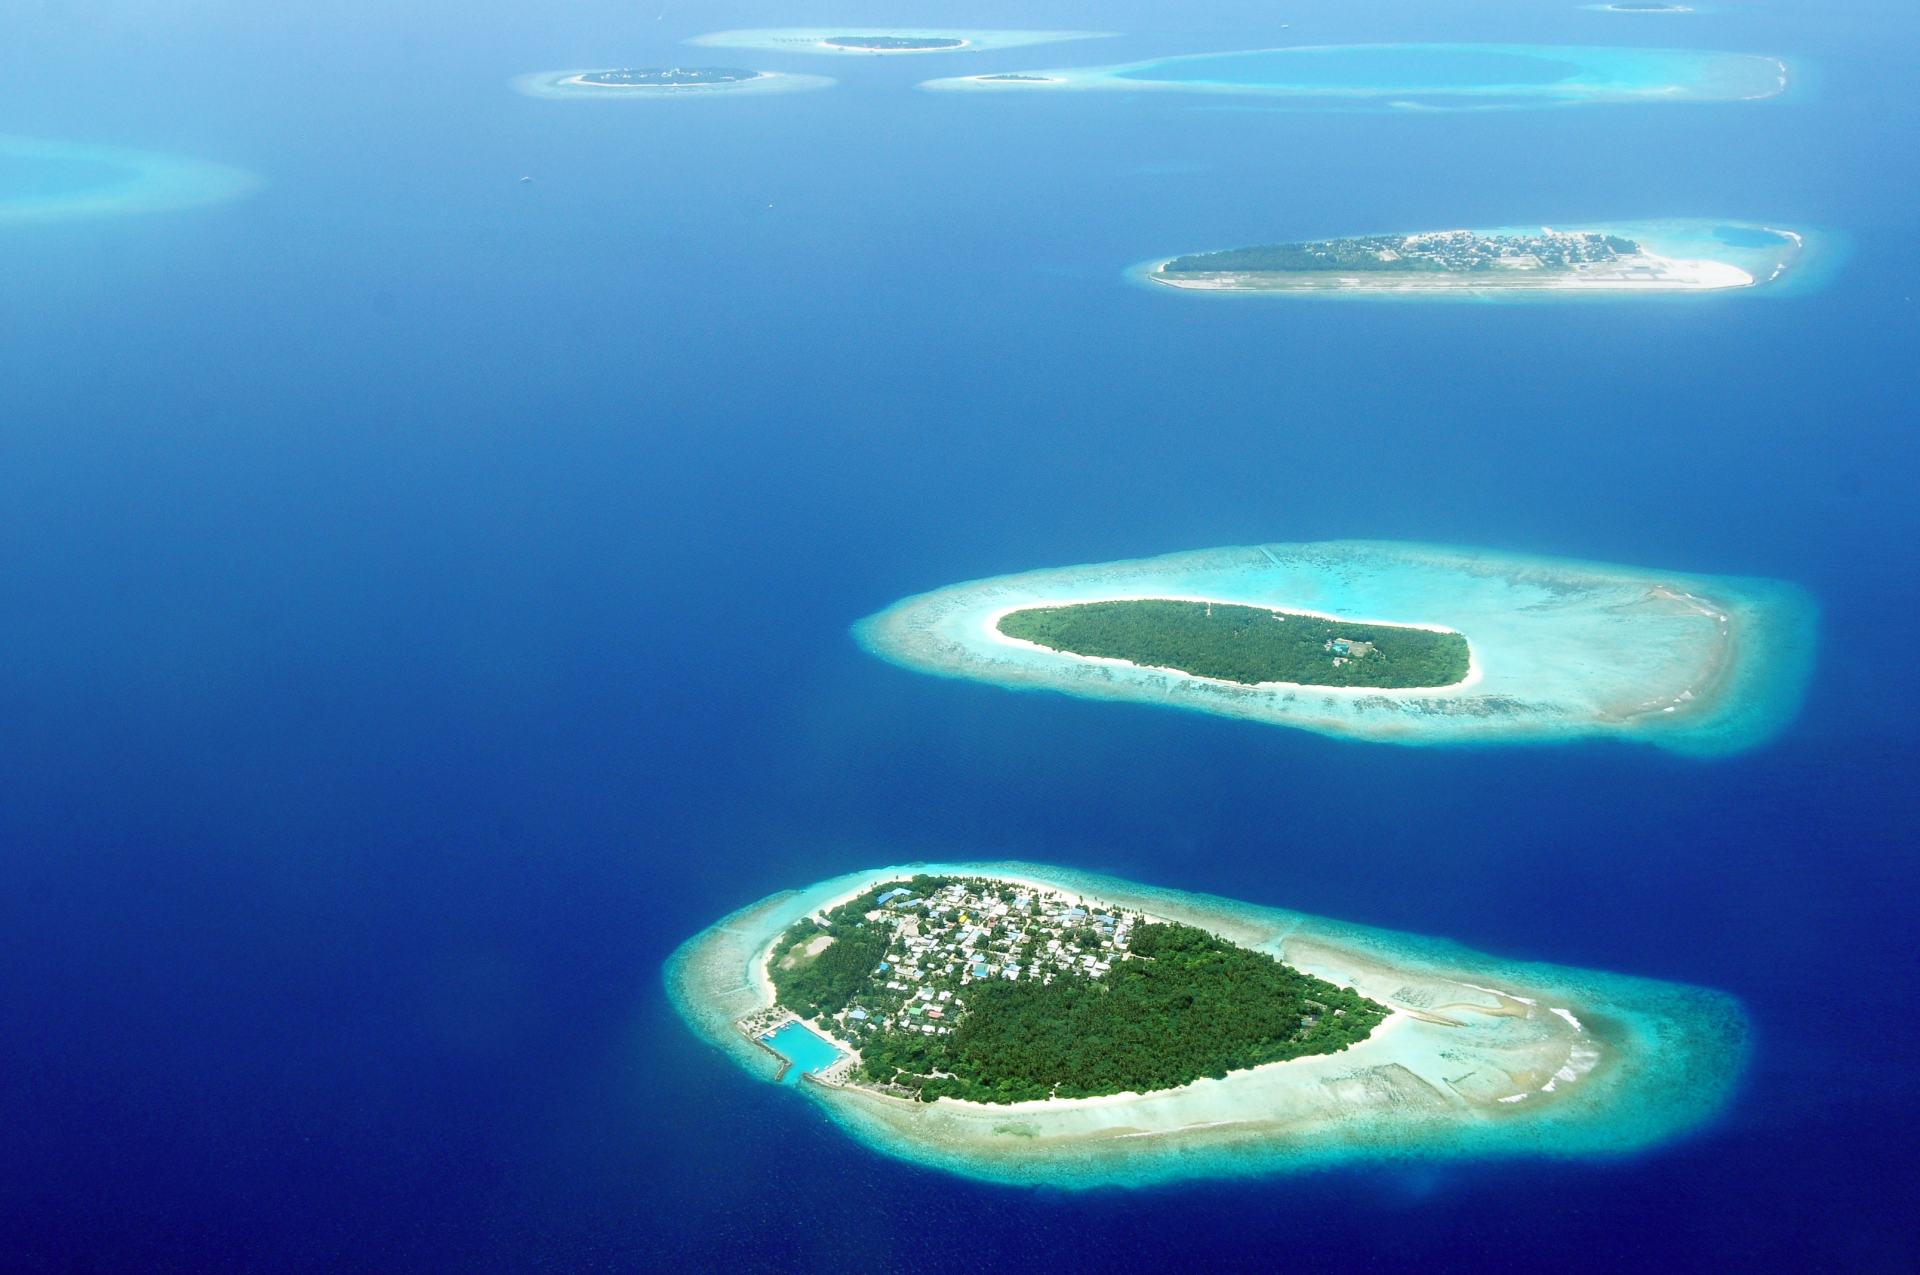 bird-s-eye-view-photography-of-islands-1268869